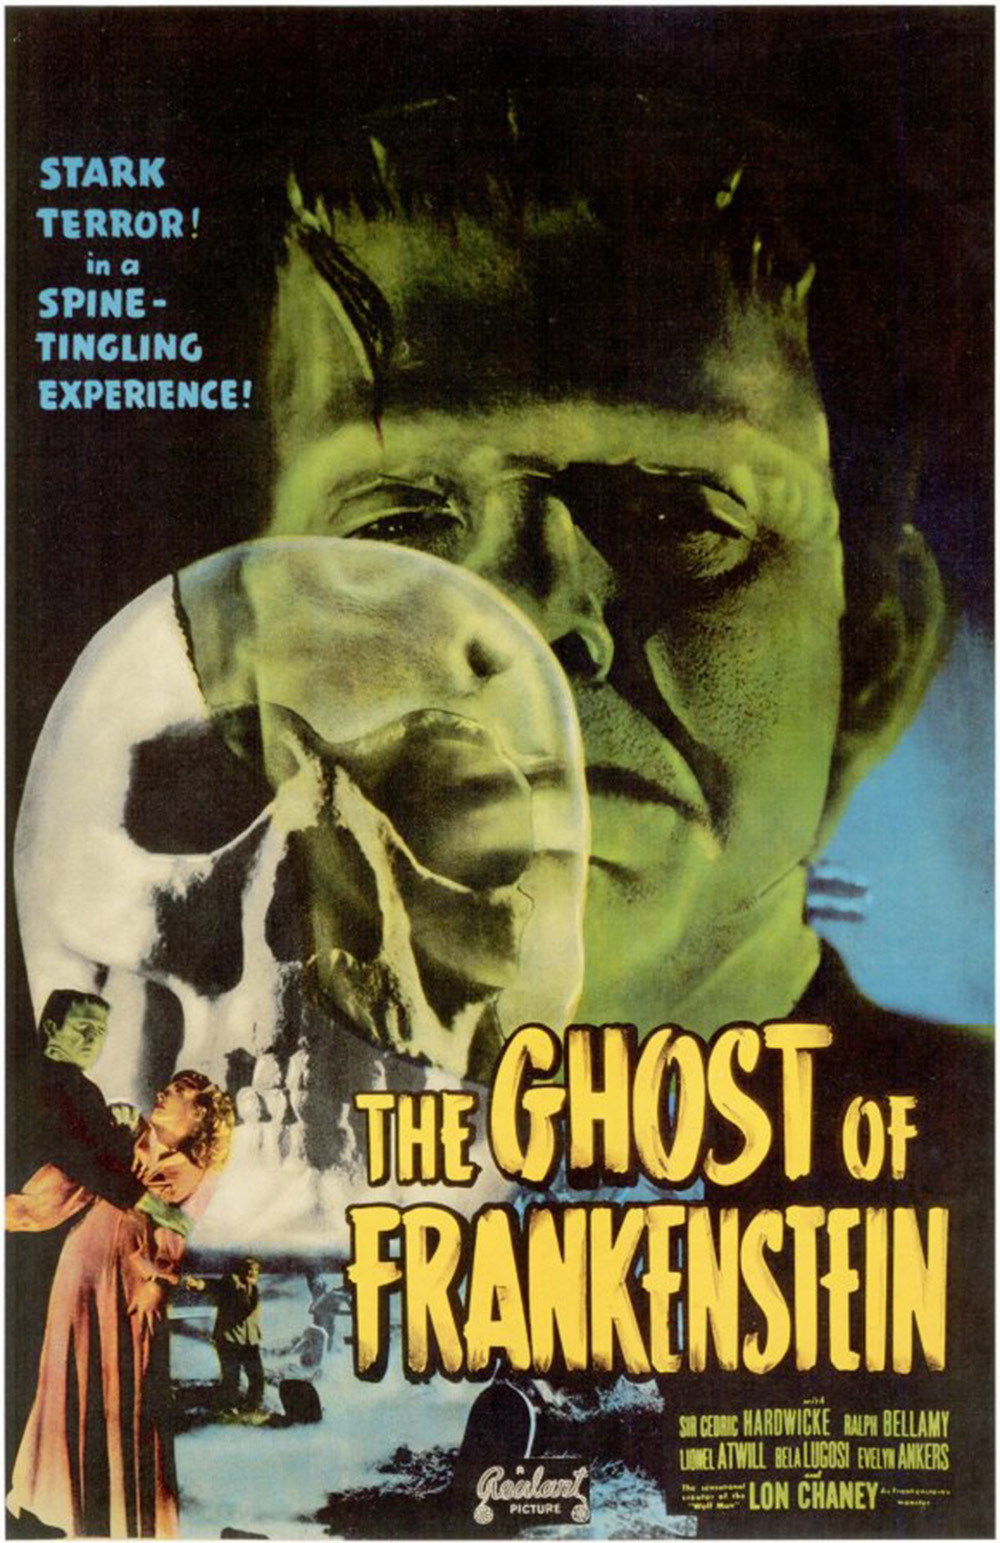 The Ghost of Frankenstein - 1942